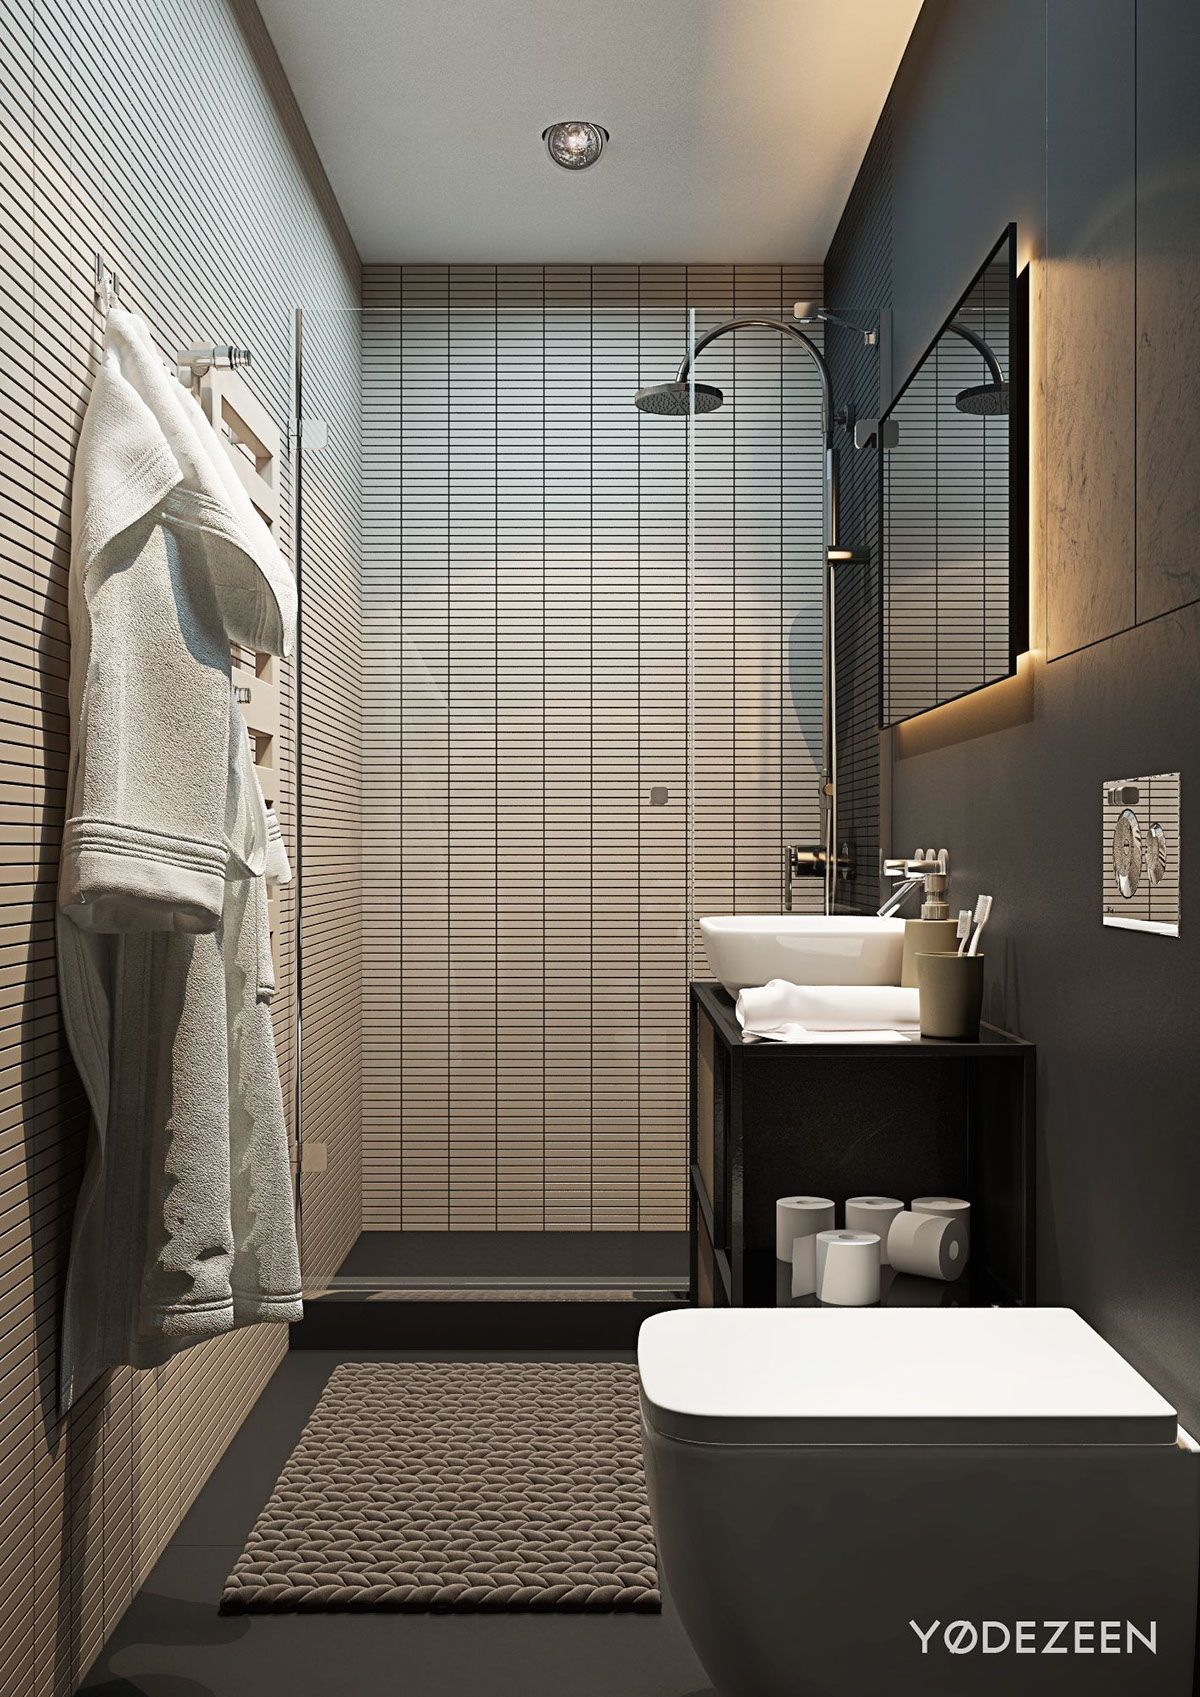 Awesome Nice Apartment Bathrooms Ideas For You Like The Remainder Of The Trendy Apa Apartment Bathroom Design Small Apartment Bathroom Small Apartment Design